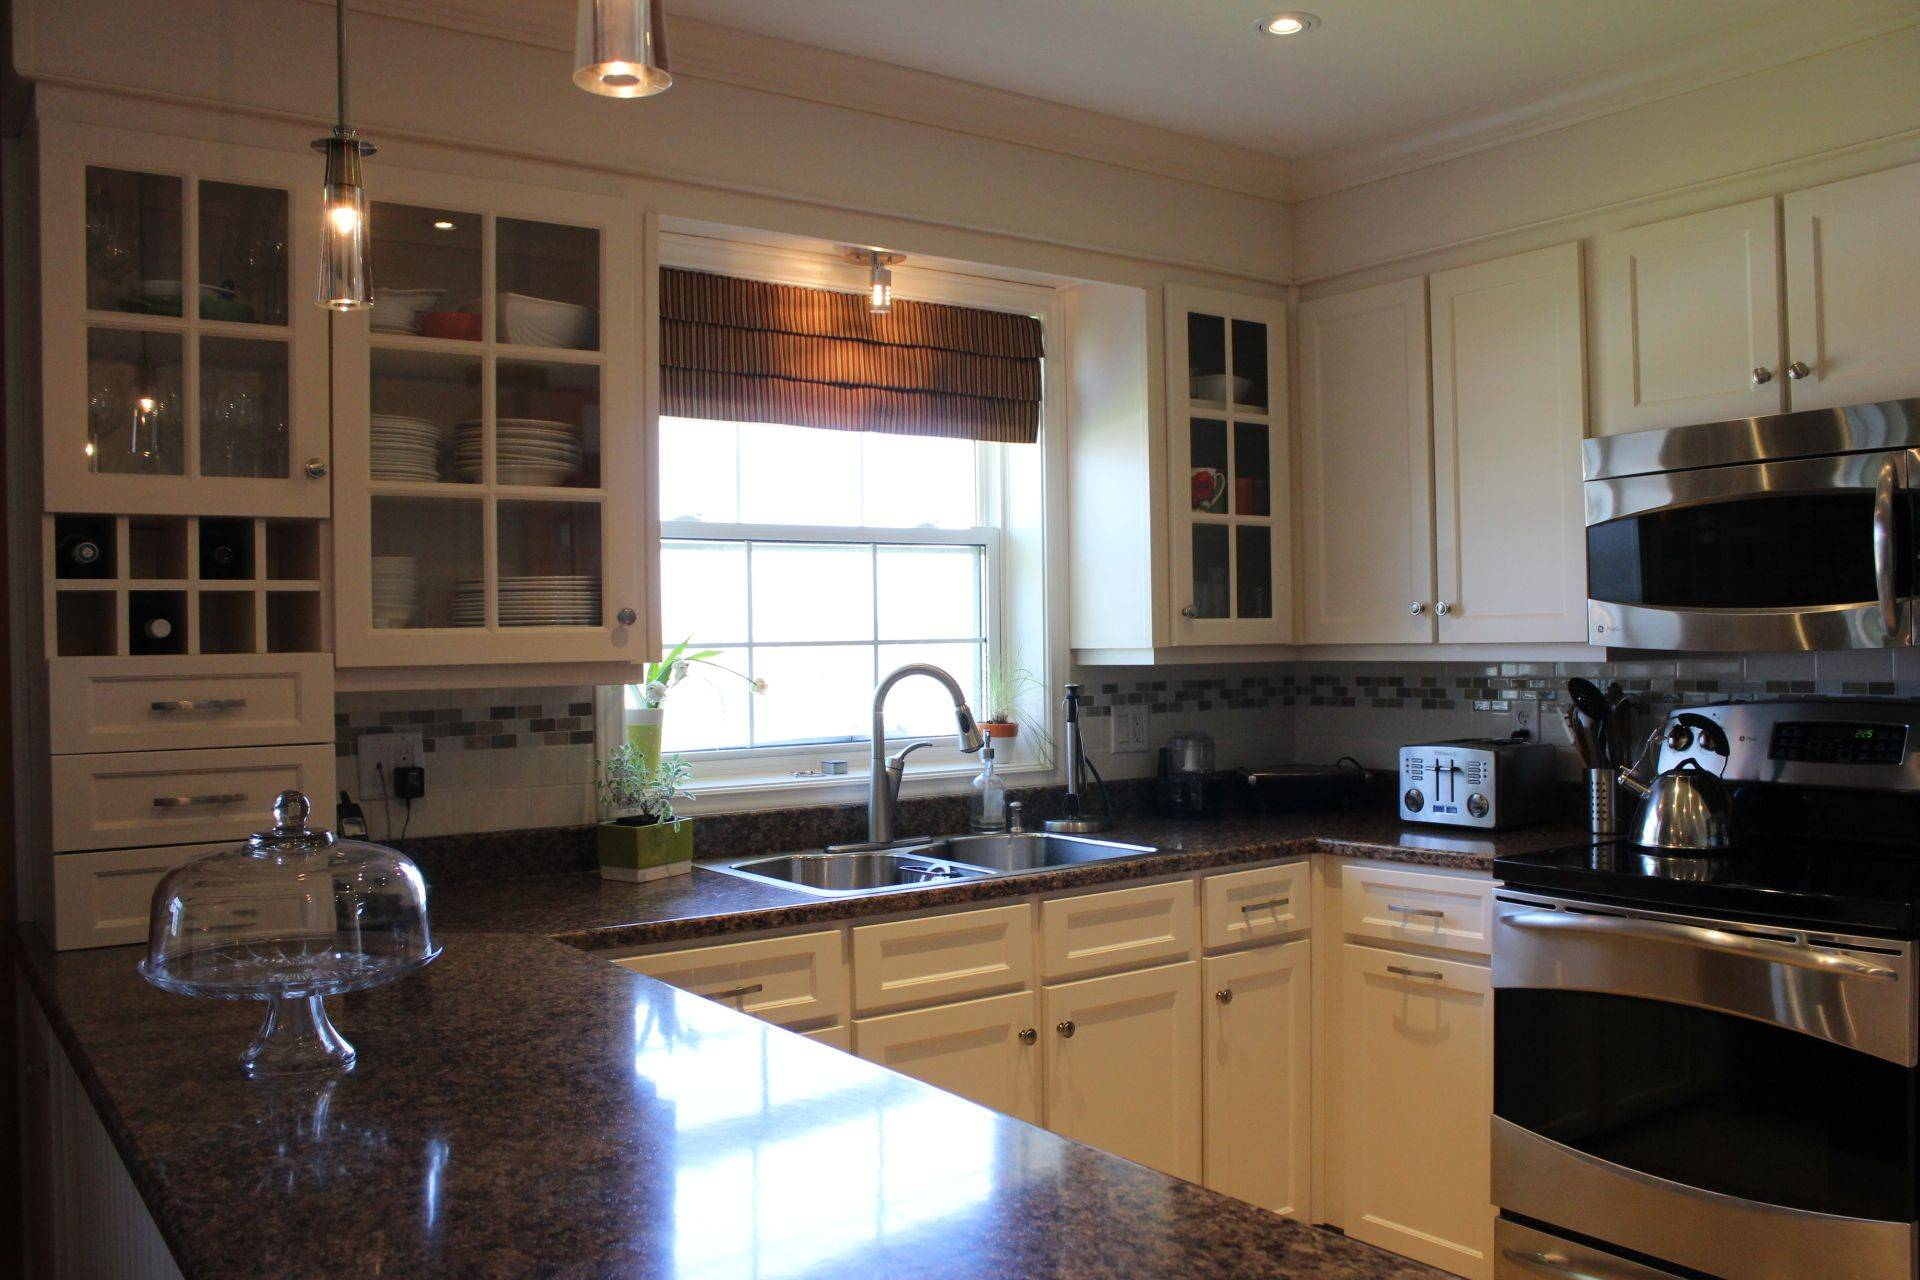 resurface kitchen cabinets professional kitchen cabinet refacing halifax dartmouth 1920